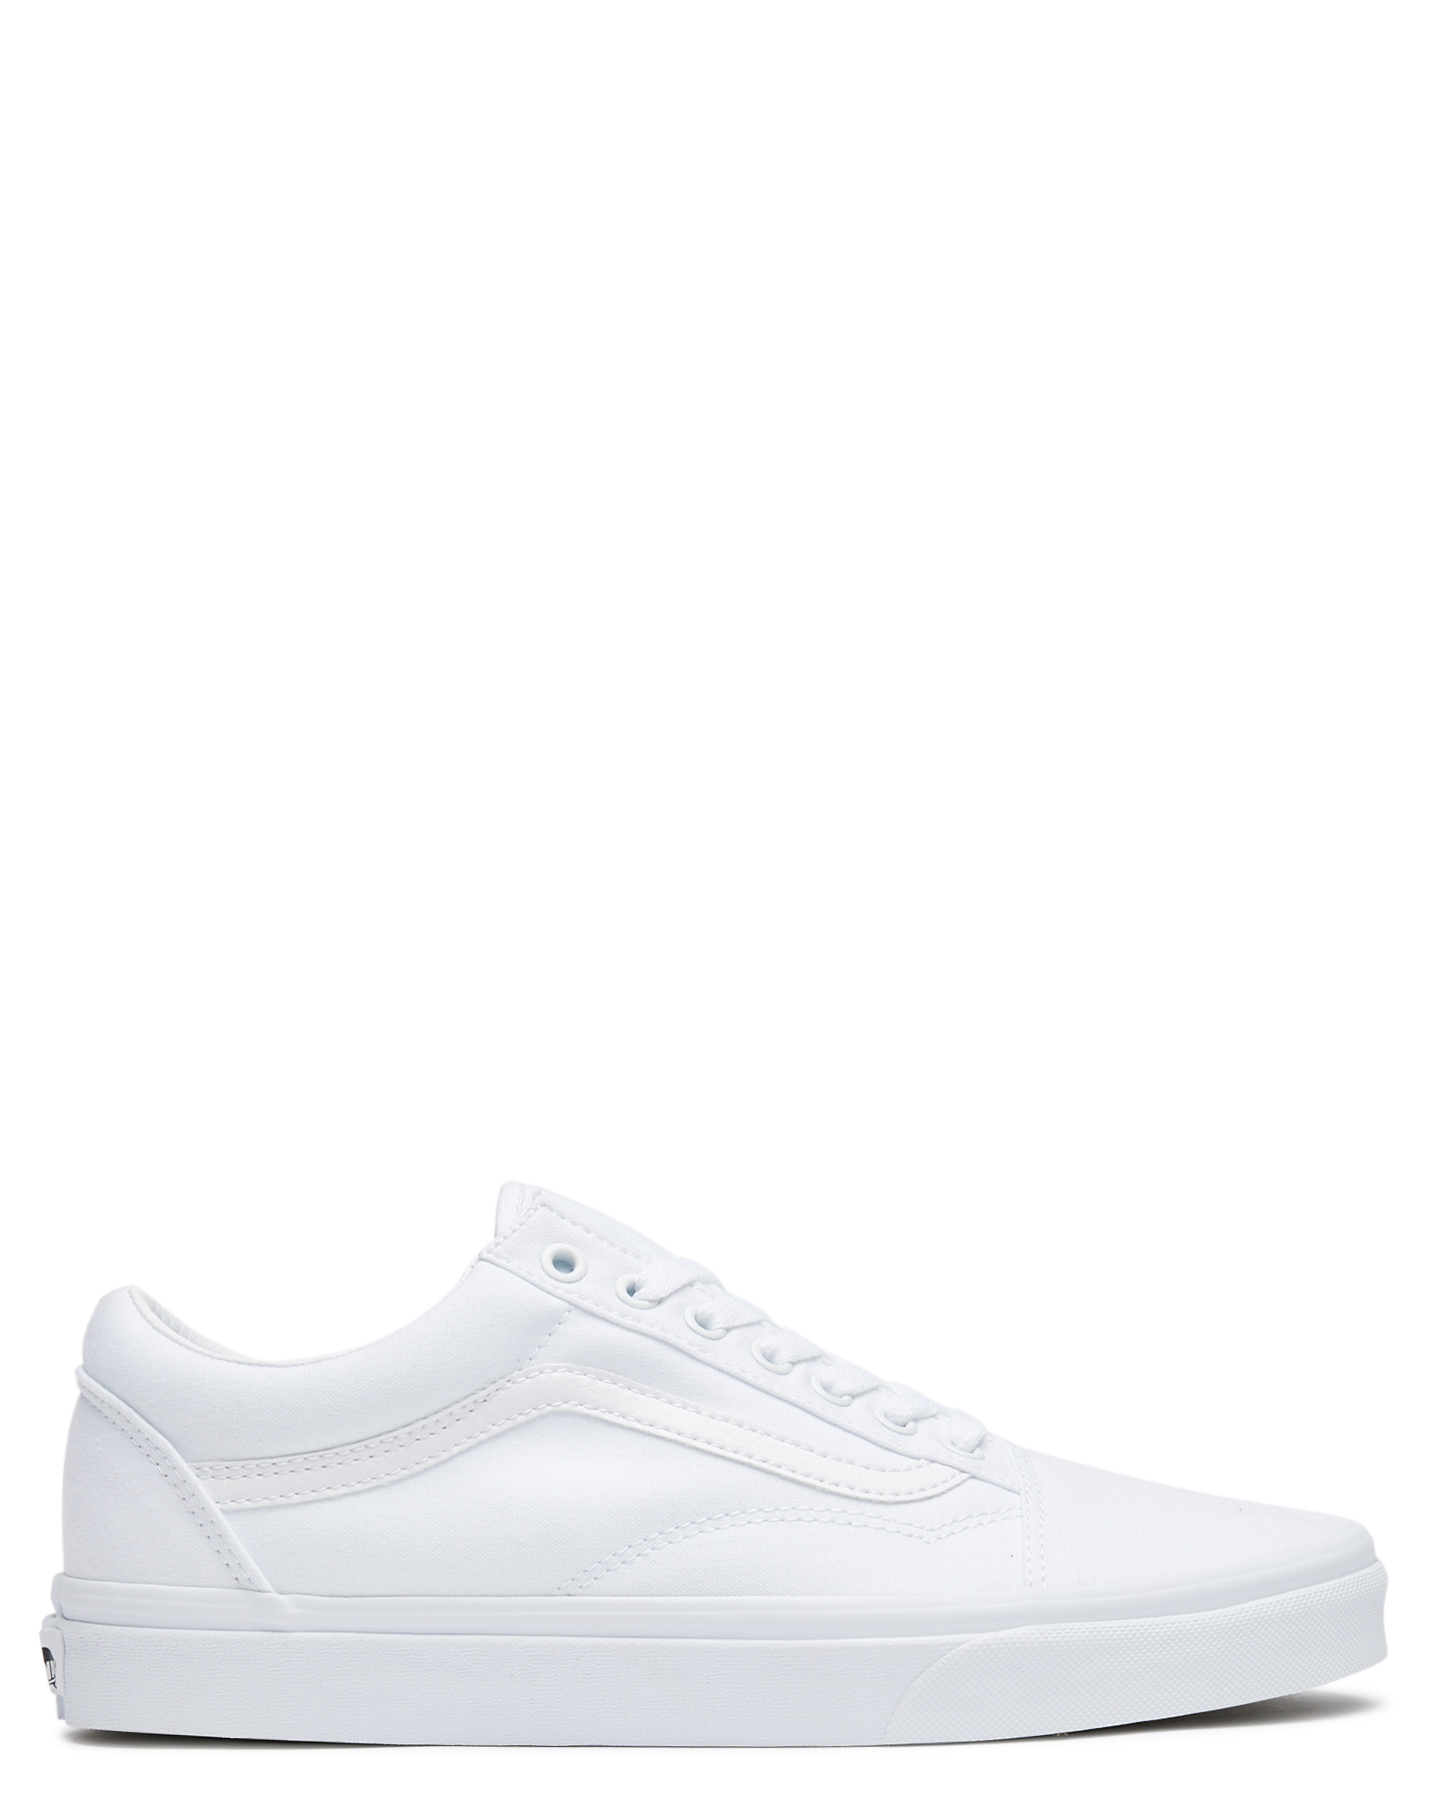 2b260c3793b Vans Skate Men s Mens Old Skool Shoe Lace Soft White